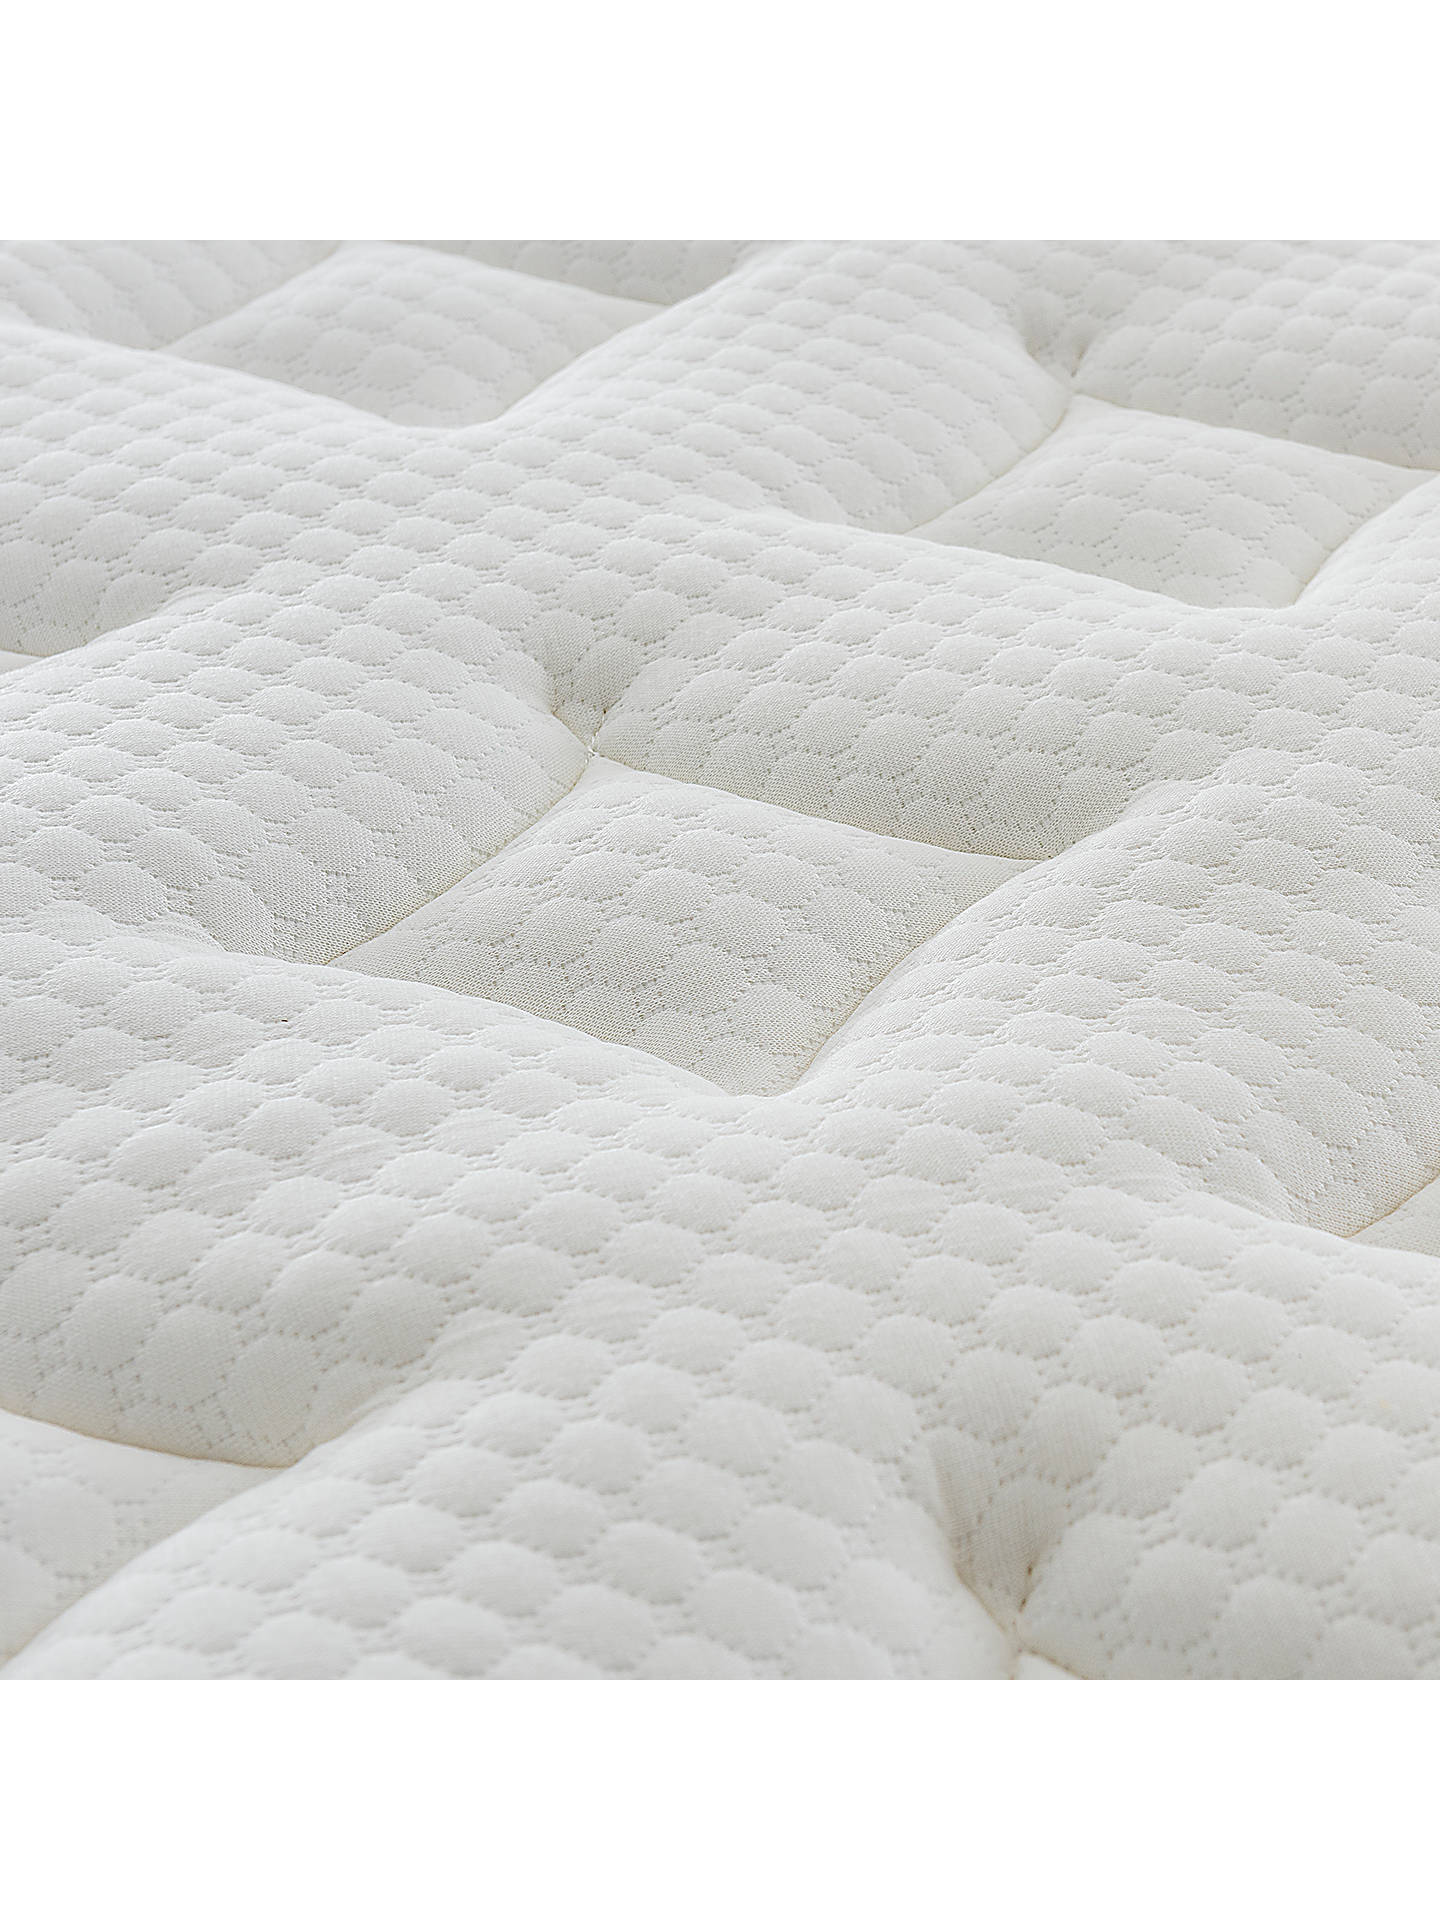 Buy Silentnight Sleep Genius 2800 Pocket Latex Mattress, Medium Tension, Single Online at johnlewis.com